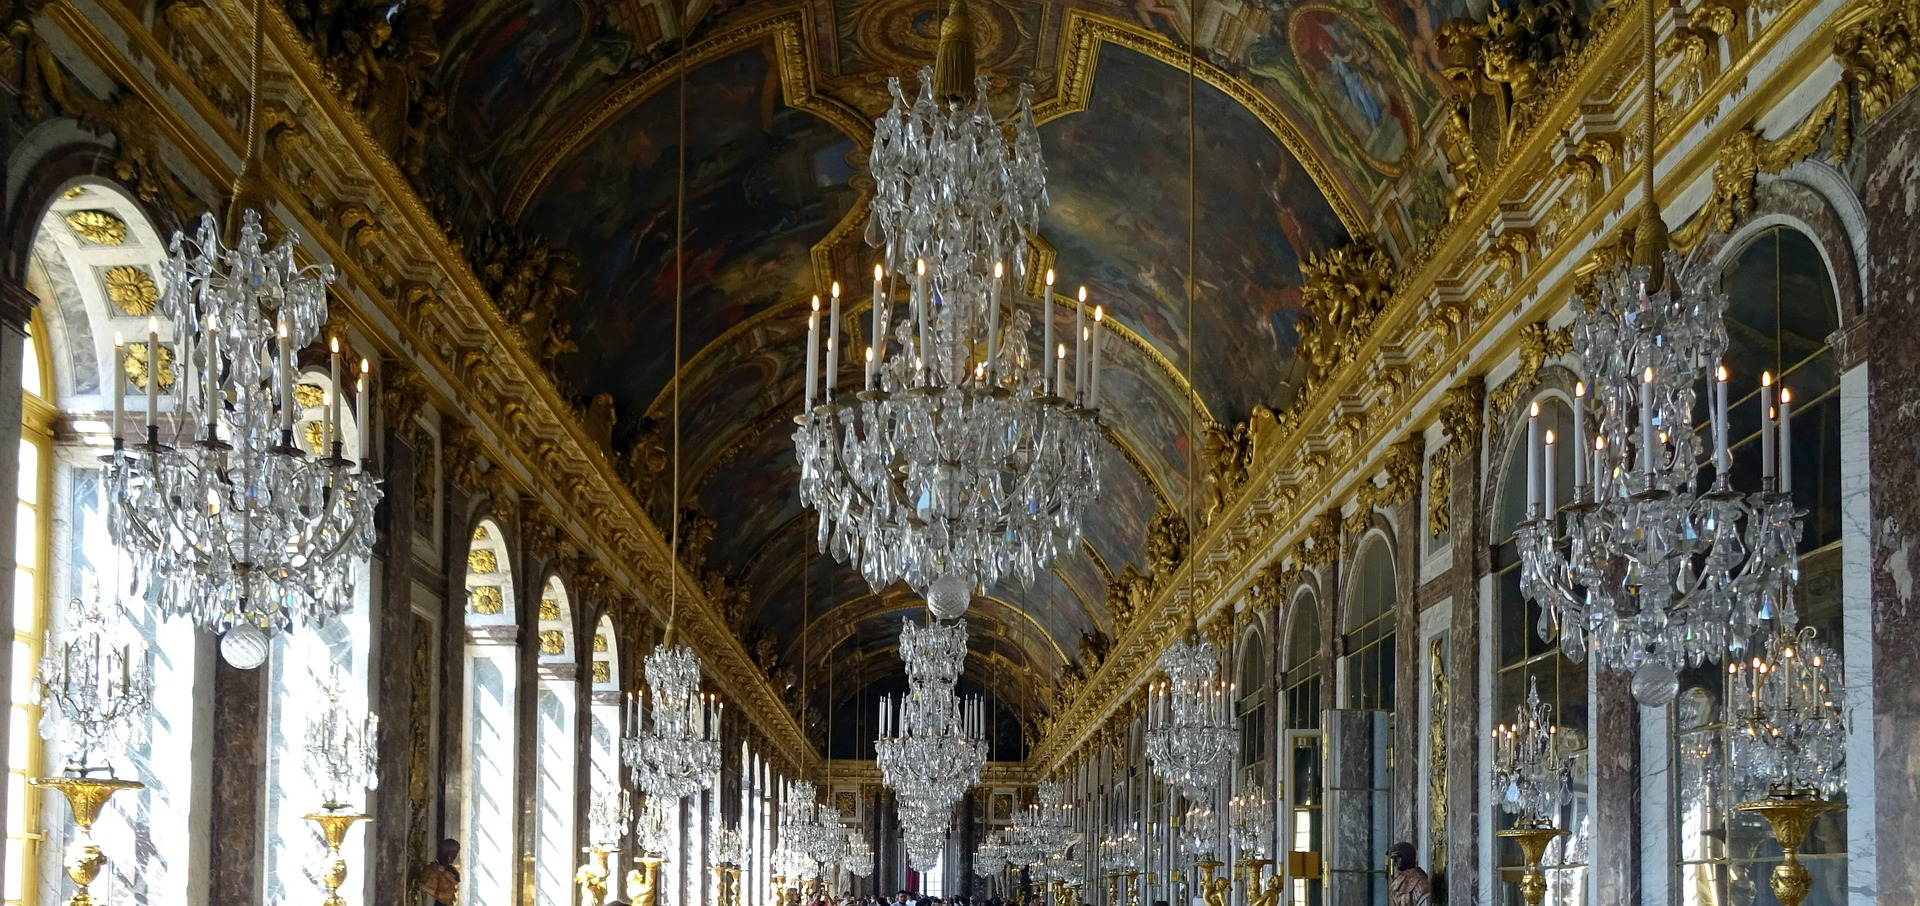 Inside Palace of Versailles, Paris, France